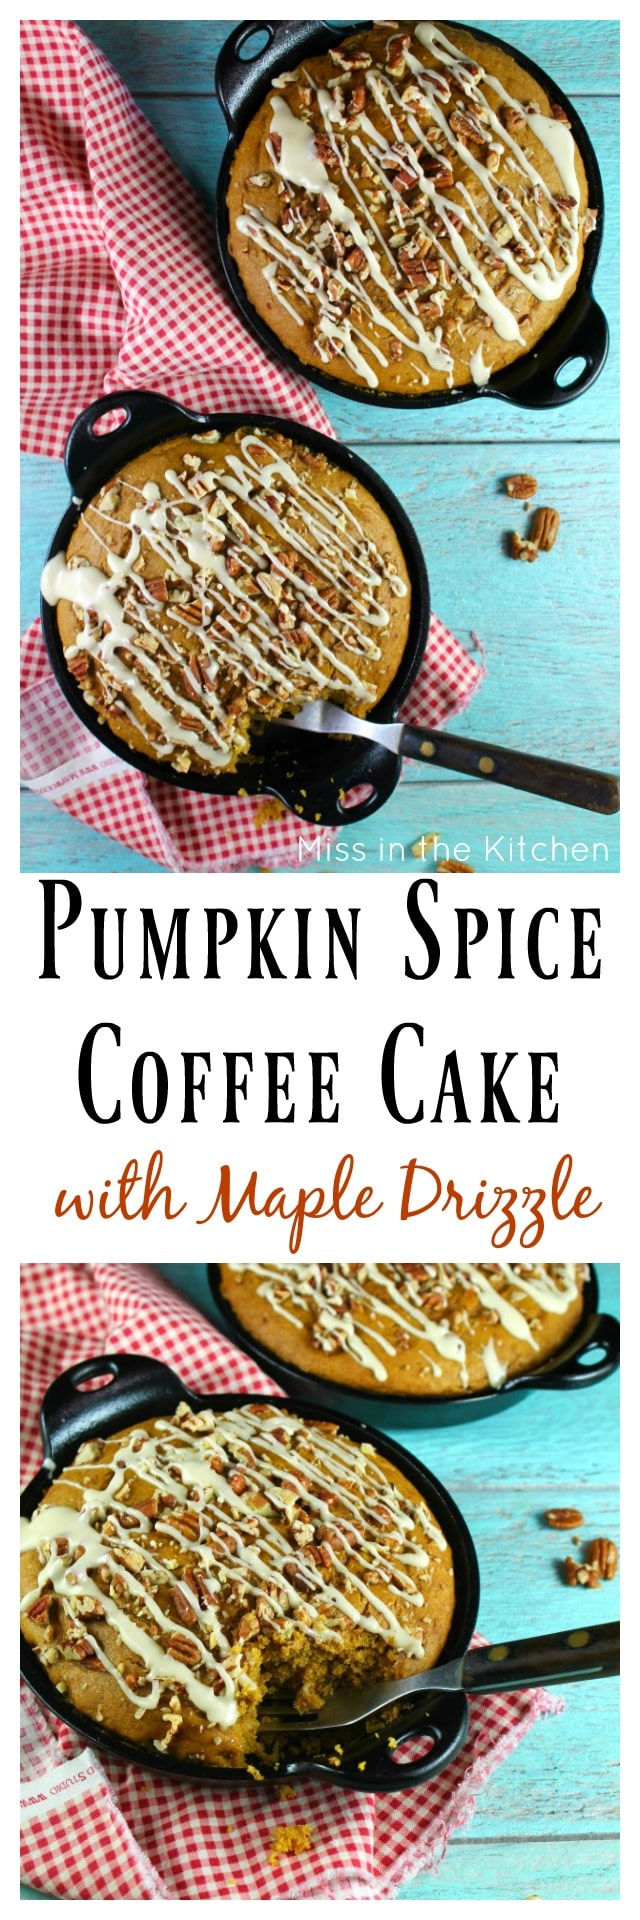 Pumpkin Spice Coffee Cake Recipe from MissintheKitchen.com Try this easy fall dessert for your next weekend brunch!